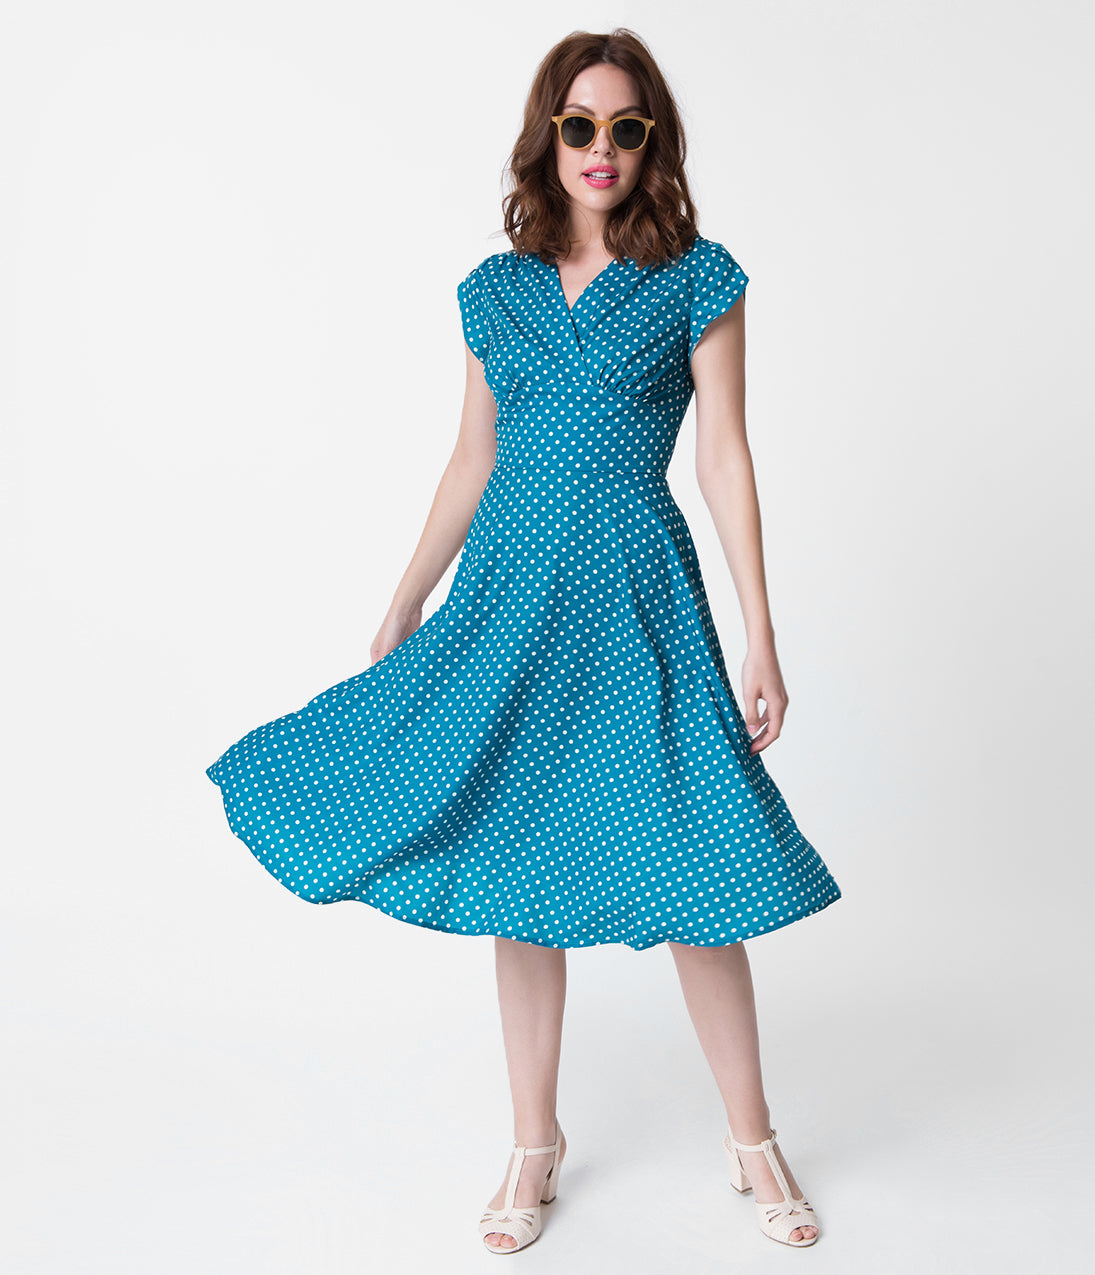 What Did Women Wear in the 1940s? Voodoo Vixen 1940S Style Teal  White Polka Dot Tabby Tea Dress $64.00 AT vintagedancer.com